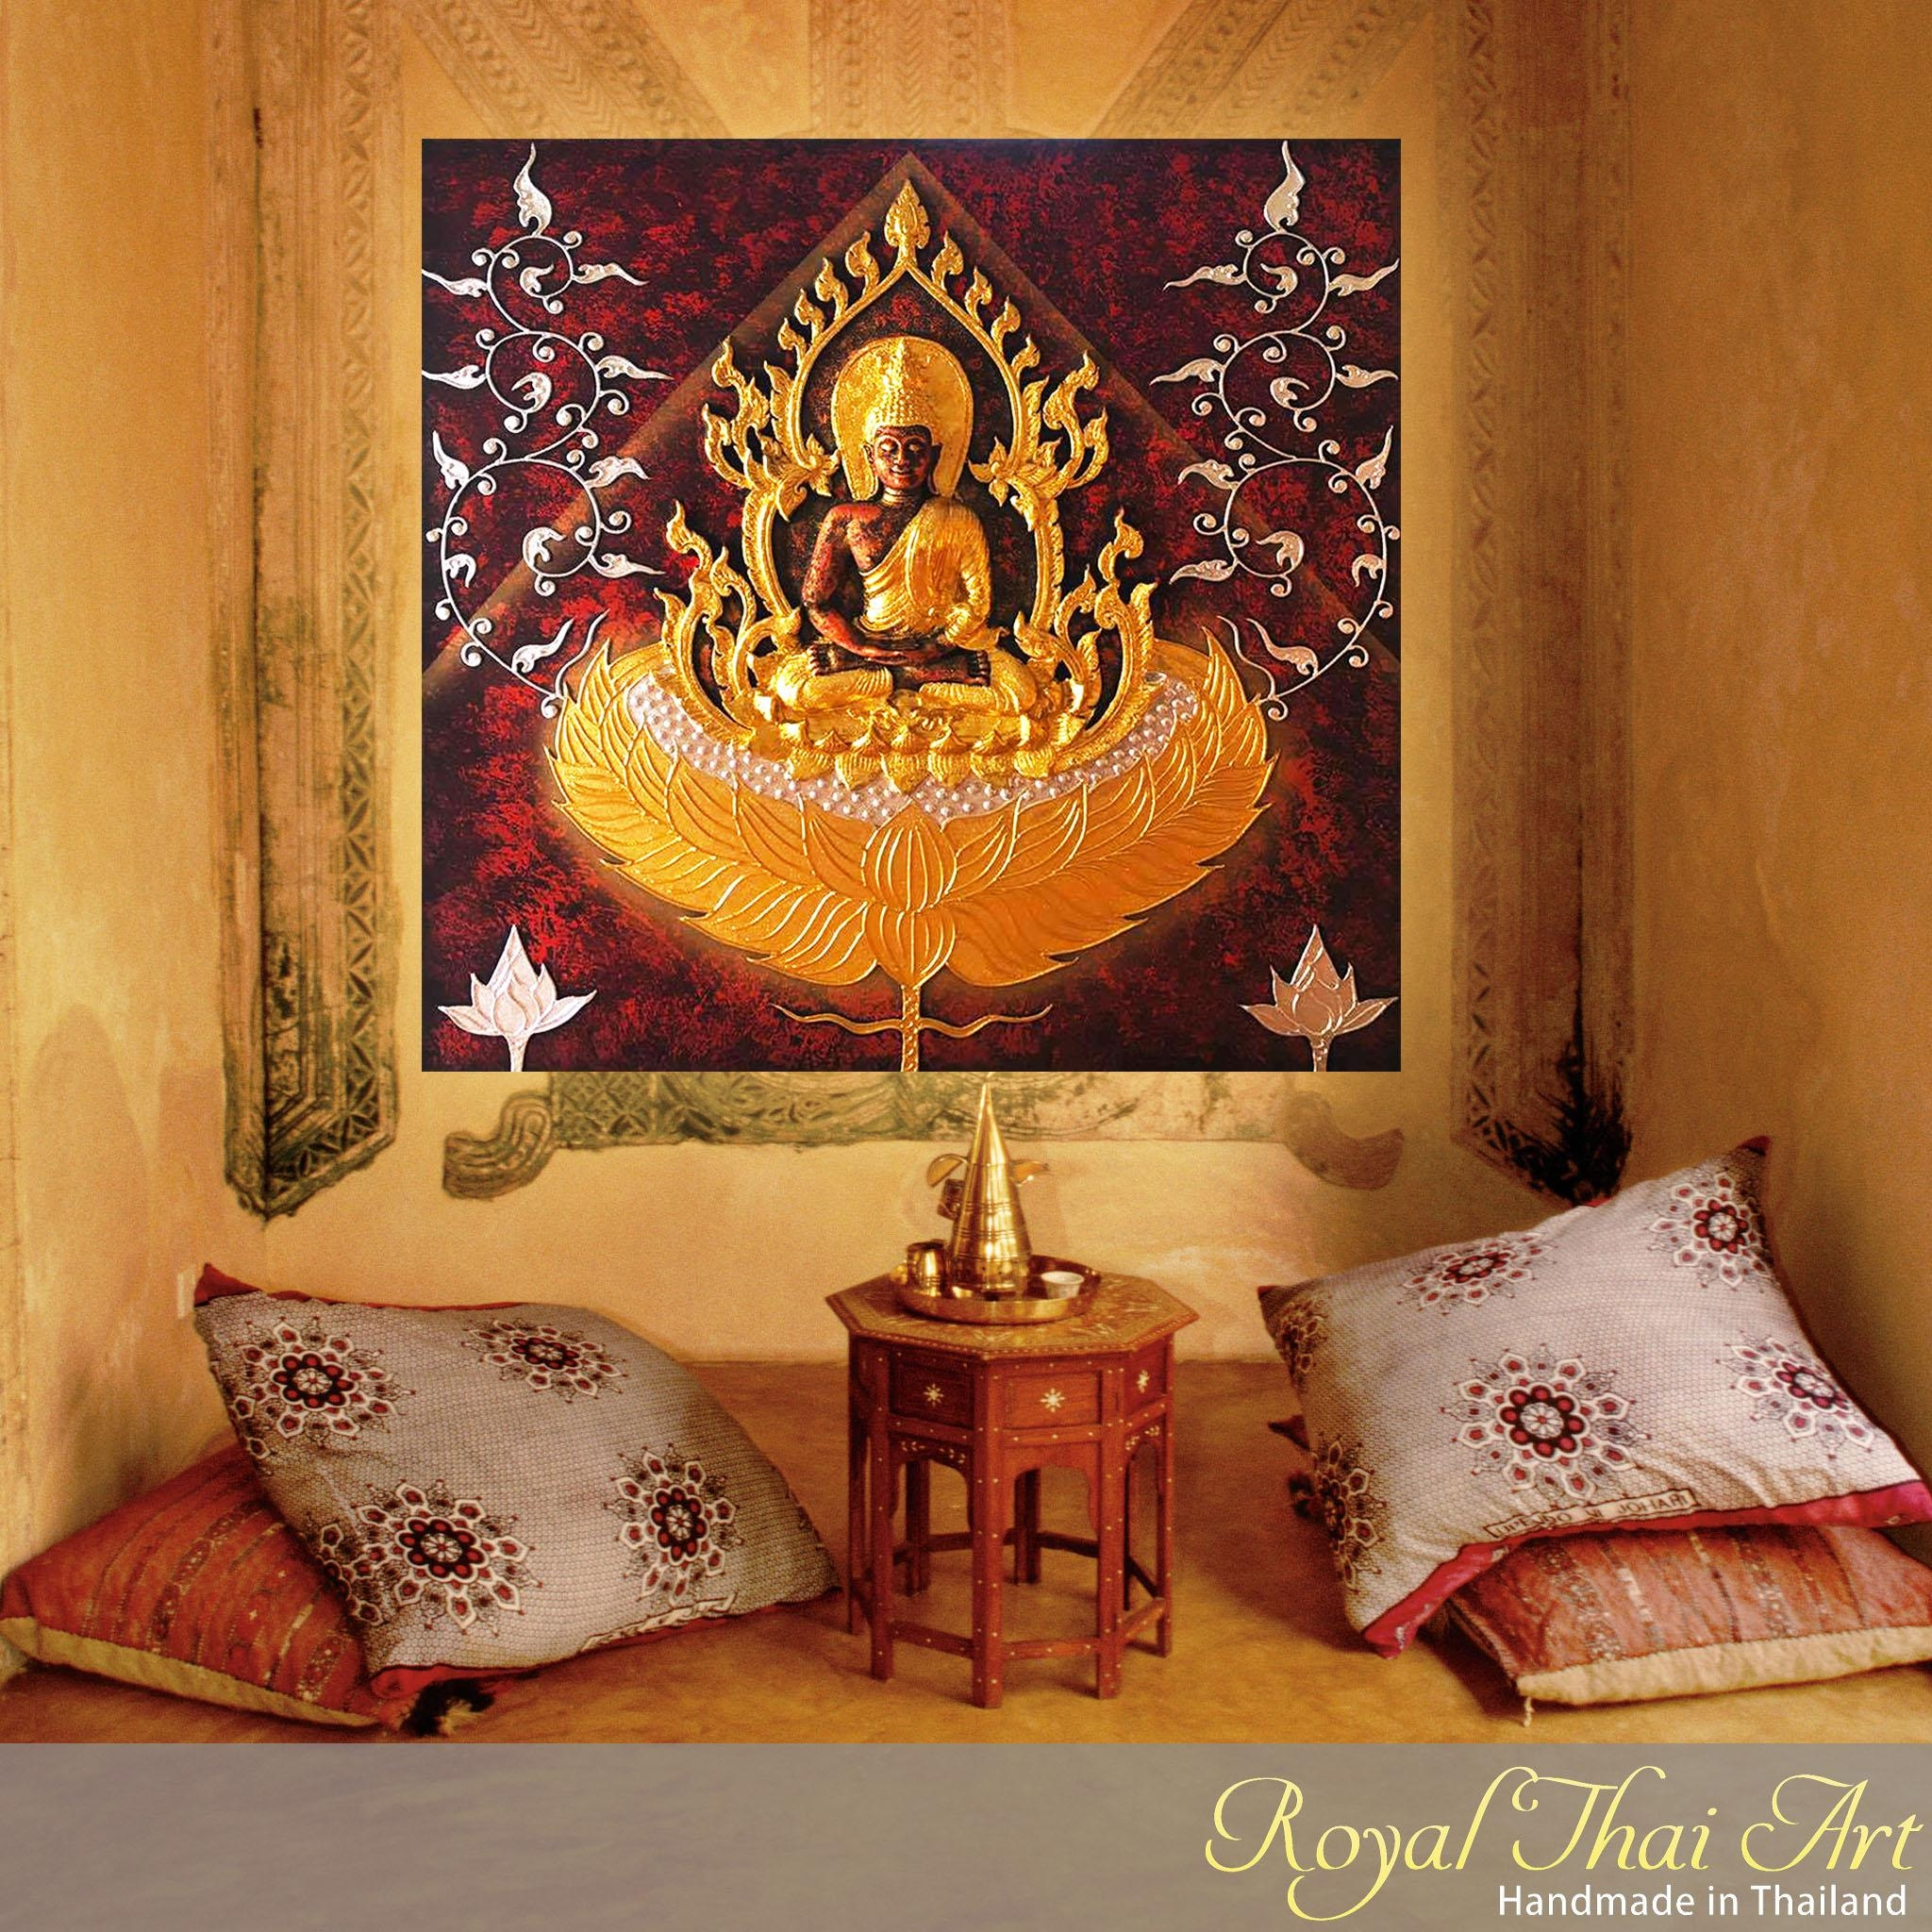 Buddha Painting 3D Handmade Gold Statue | Royal Thai Art With Buddha Wooden Wall Art (Image 4 of 20)